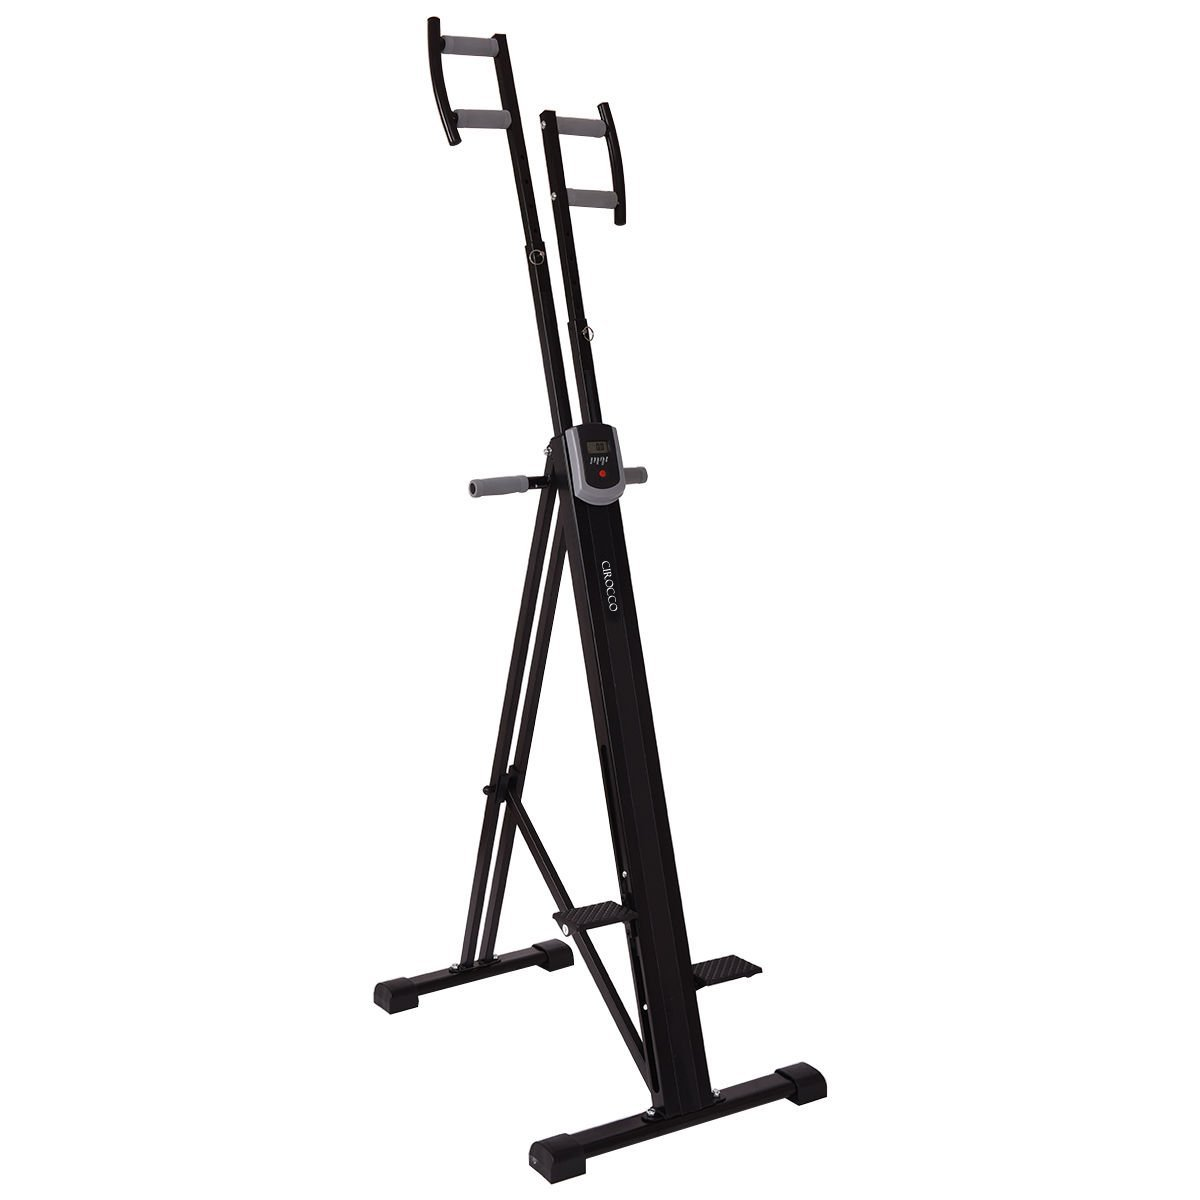 Cirocco Folding Stair Stepper Vertical Climber Exercise Cardio Machine w/ LCD Display | Strong Sturdy Total Full Body Aerobic Anaerobic Workout Fitness Equipment for Calorie Fat Burn Leg Bicep Triceps by Cirocco (Image #2)